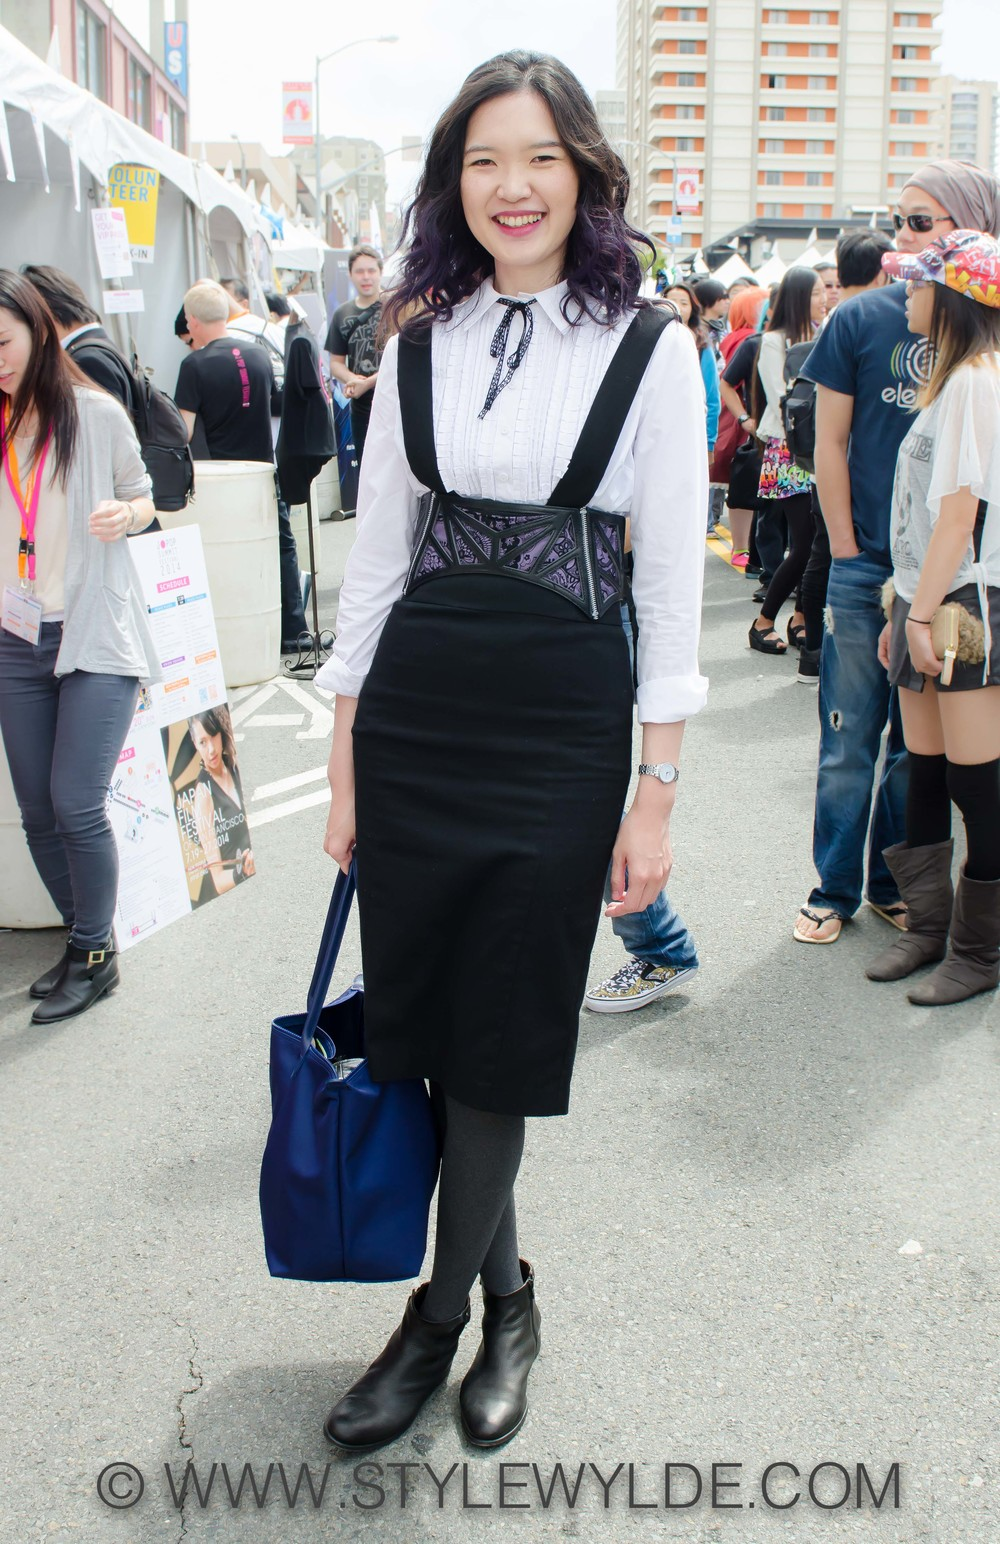 StyleWylde_JPOP14_Day1_CHA (9 of 27).jpg